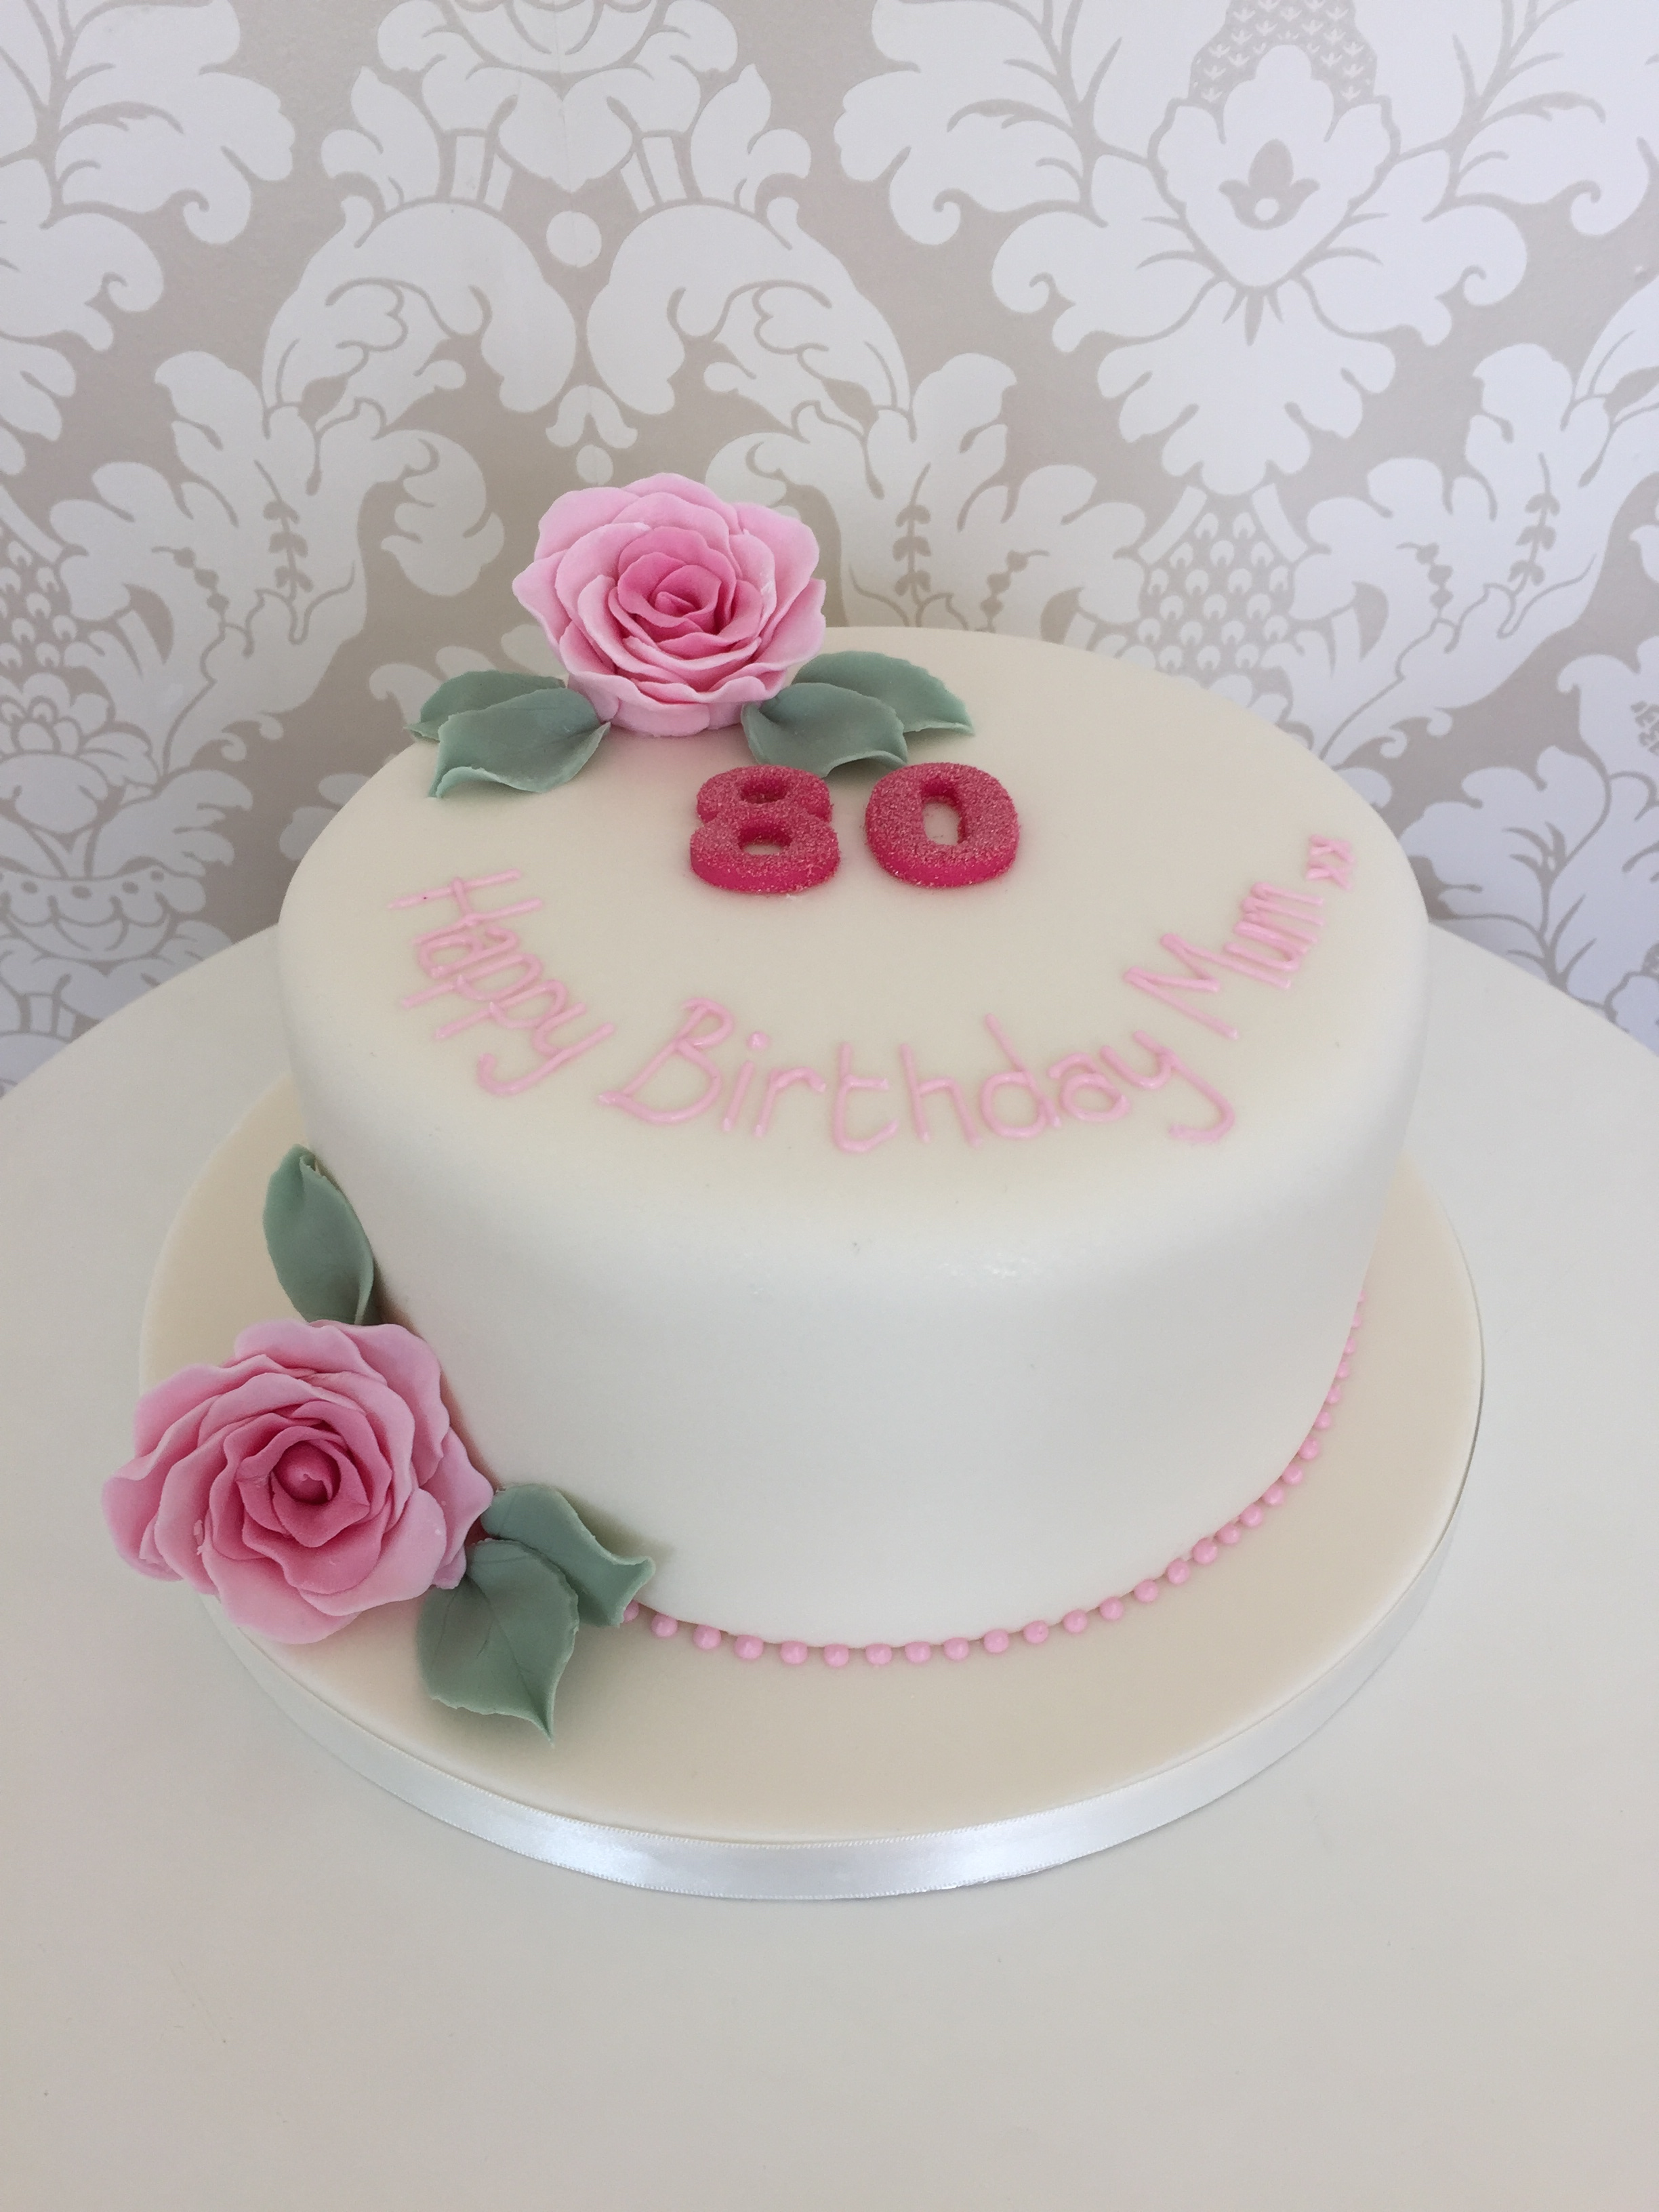 One Tier Female 80th Birthday Cakes With Pink Sugar Roses Bedfordshire Hertfordshire London And